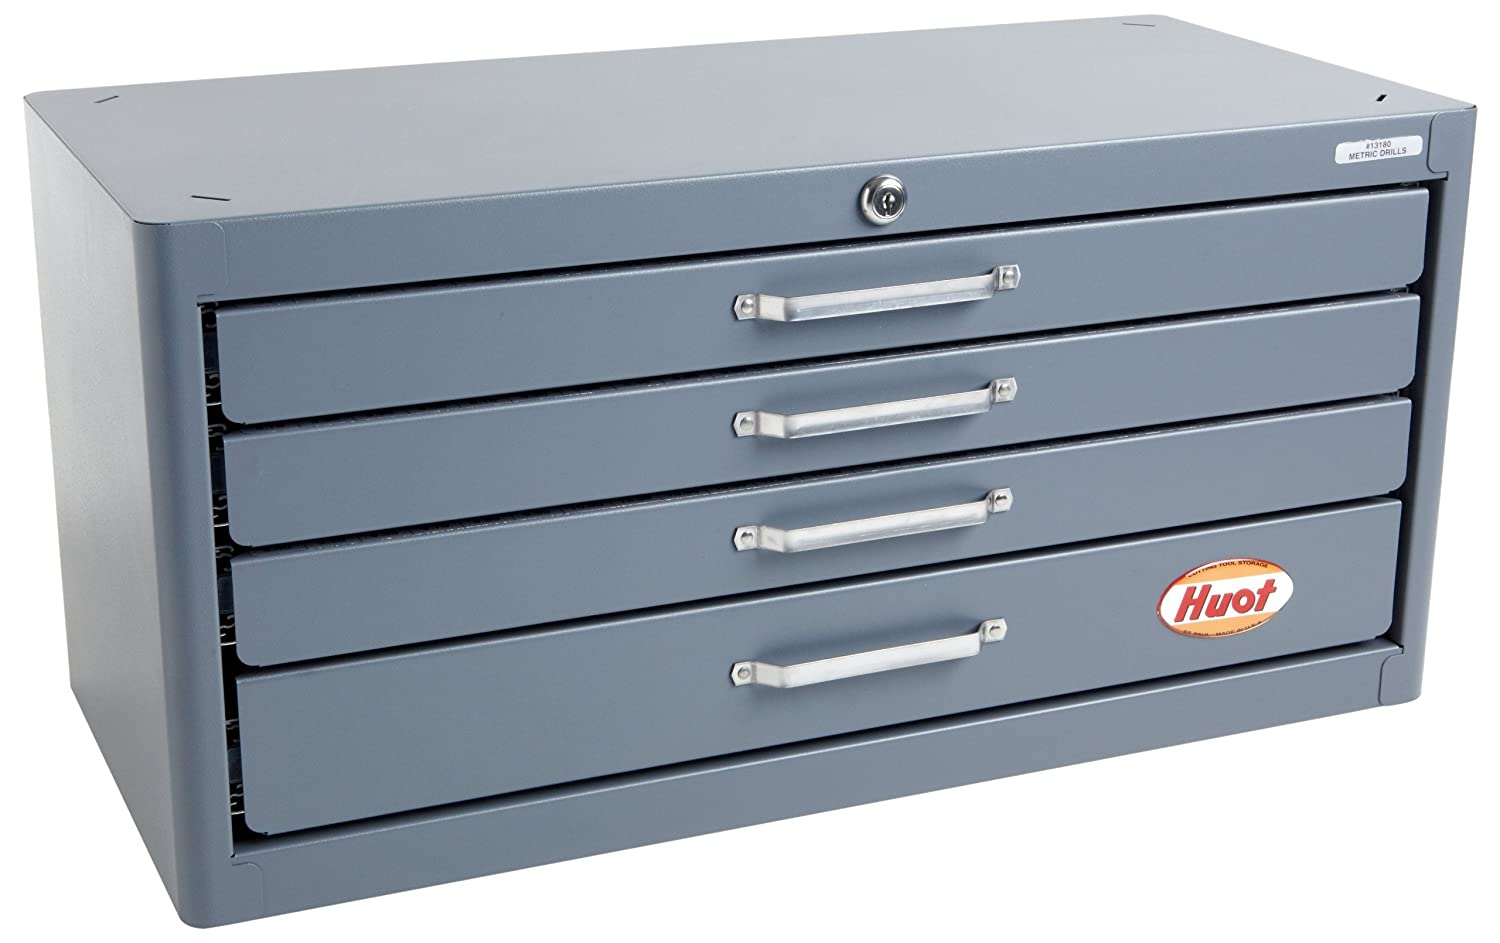 Huot Long Beach Mall 13180 Four-Drawer Mail order cheap Master Dispenser for Cabinet Drill Metric